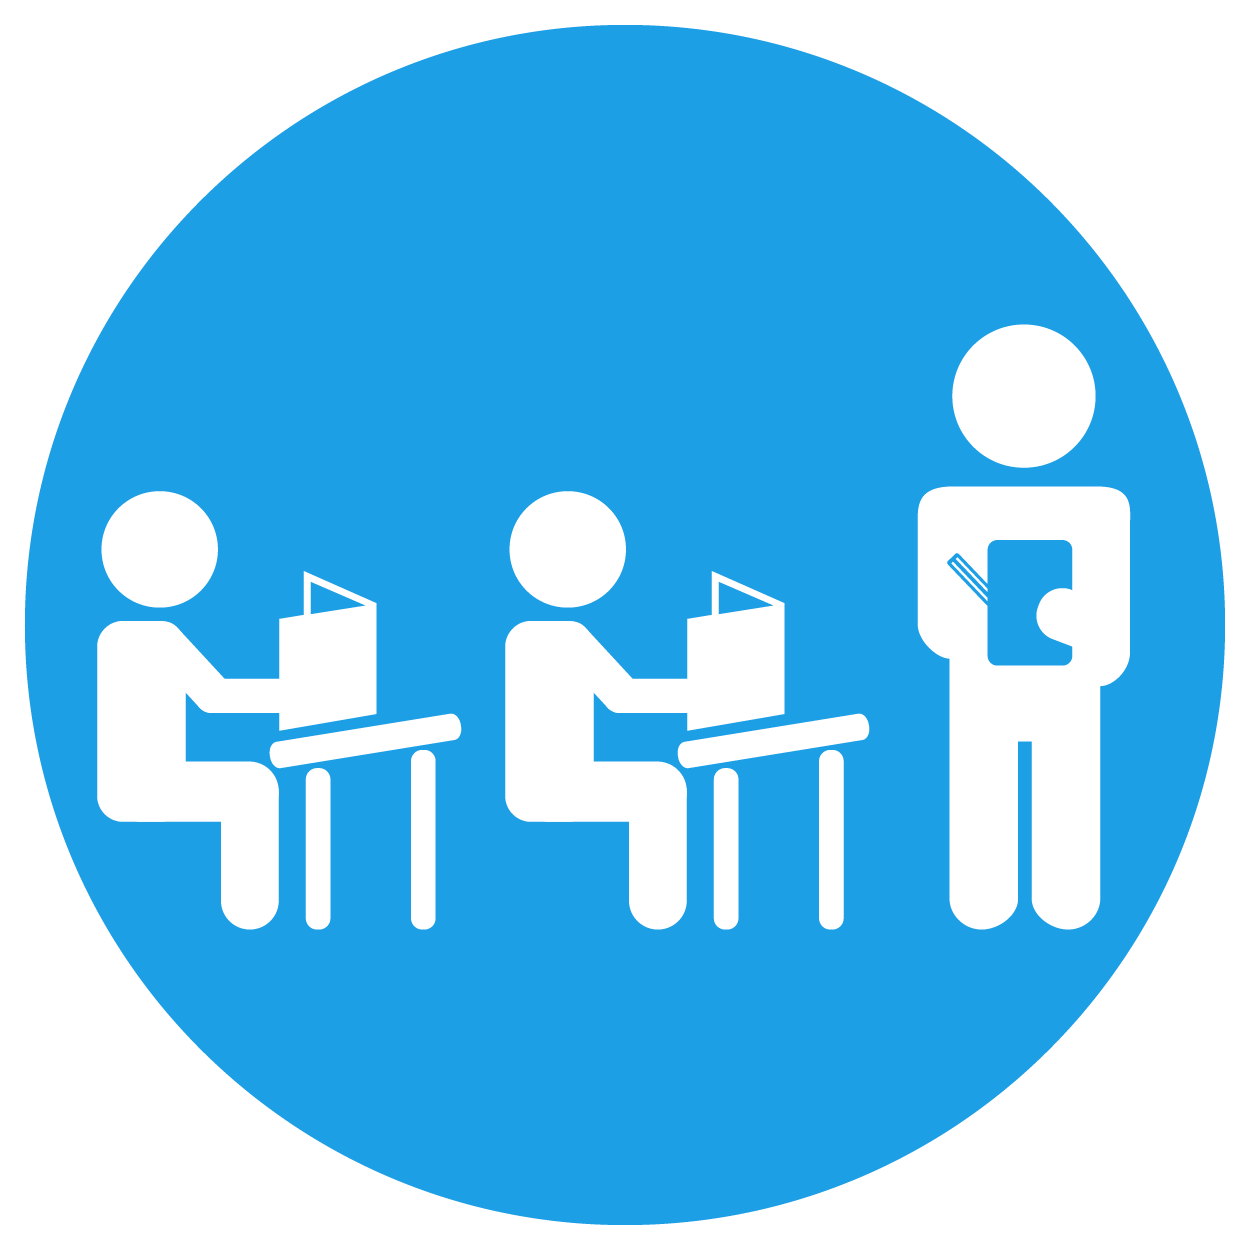 small-group-icon